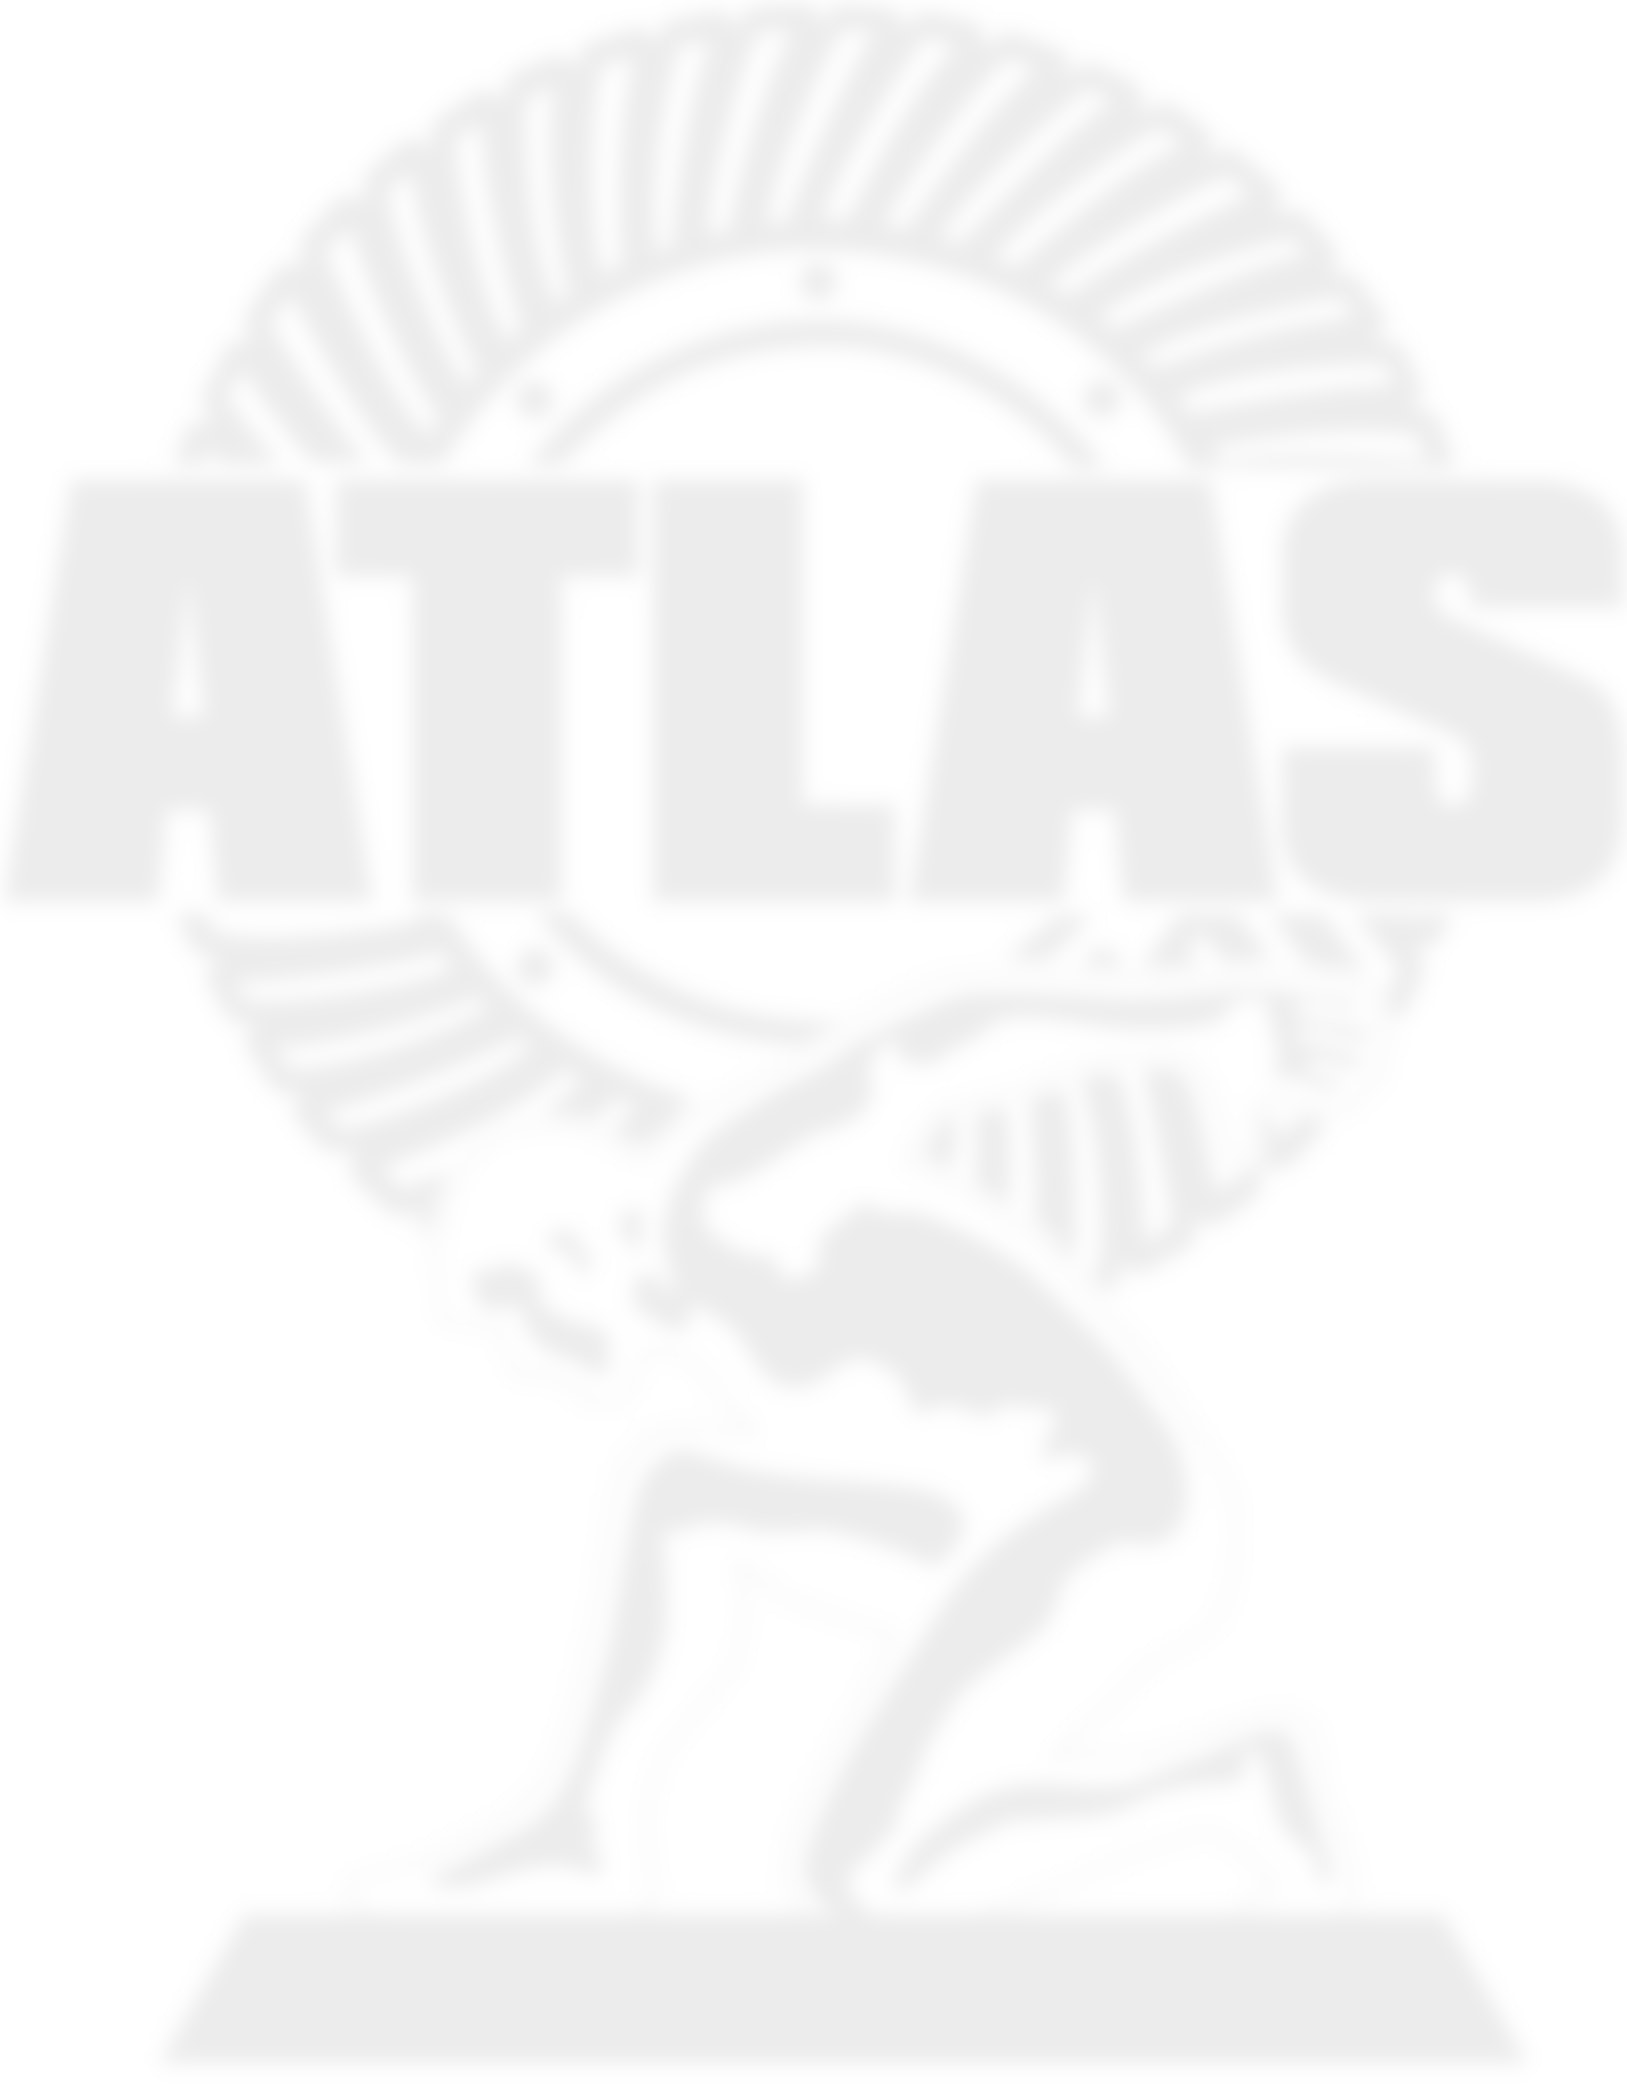 Atlas Primary Logo Single Color White Notext